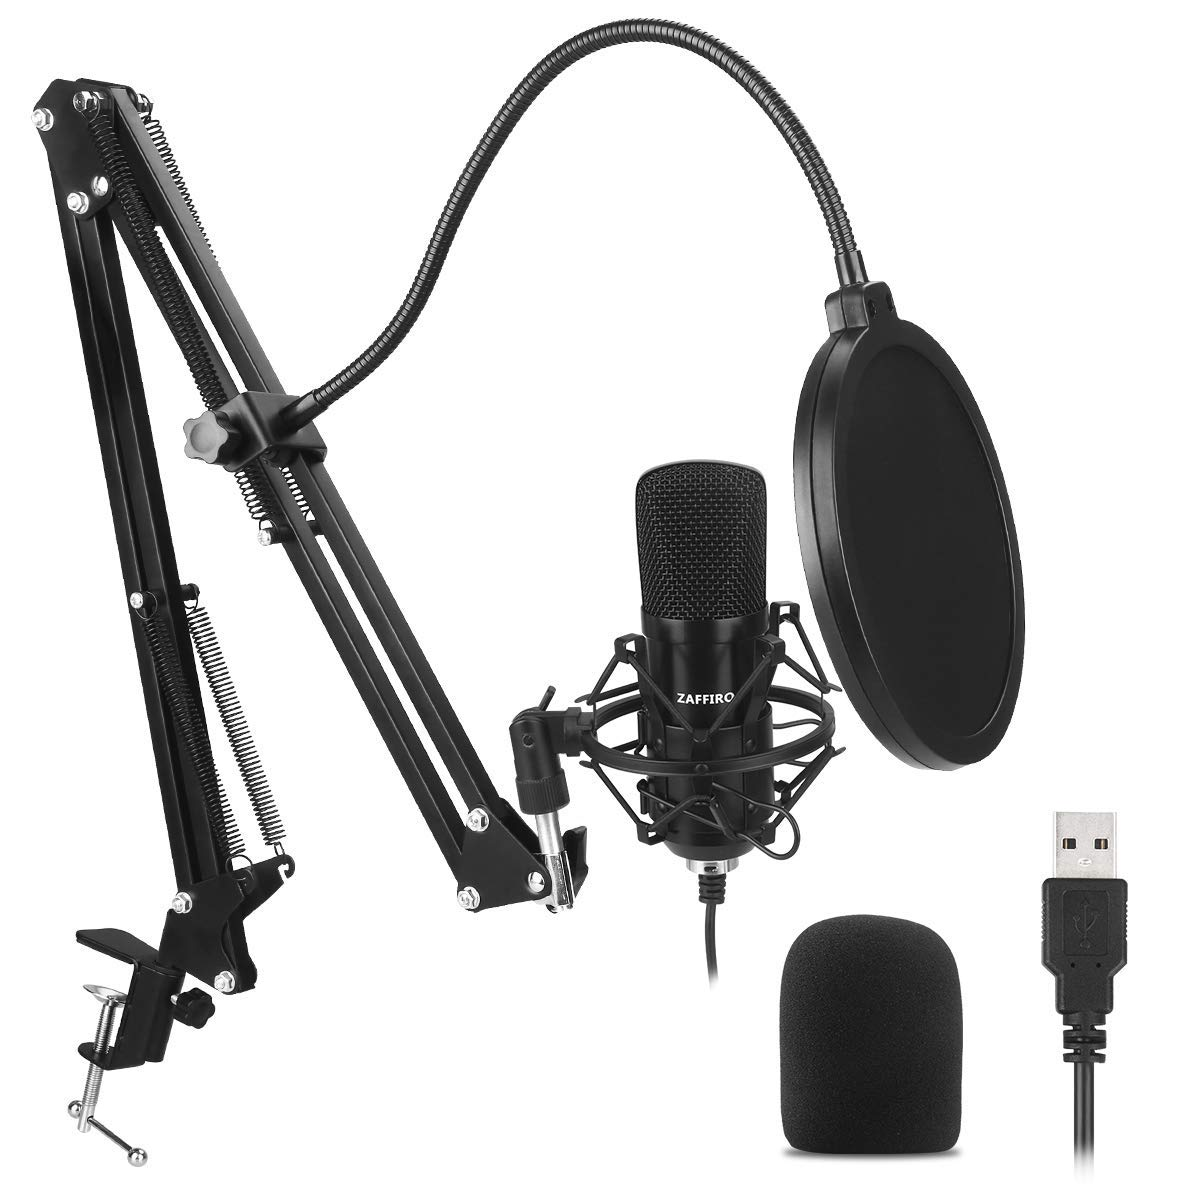 USB Microphone Kit, ZAFFIRO Condenser Microphone Plug& Play Cardioid Computer Microphone for Desktop/Laptop/Notebook,Recording for Podcasting, Live Streaming, Gaming or Chatting,Black